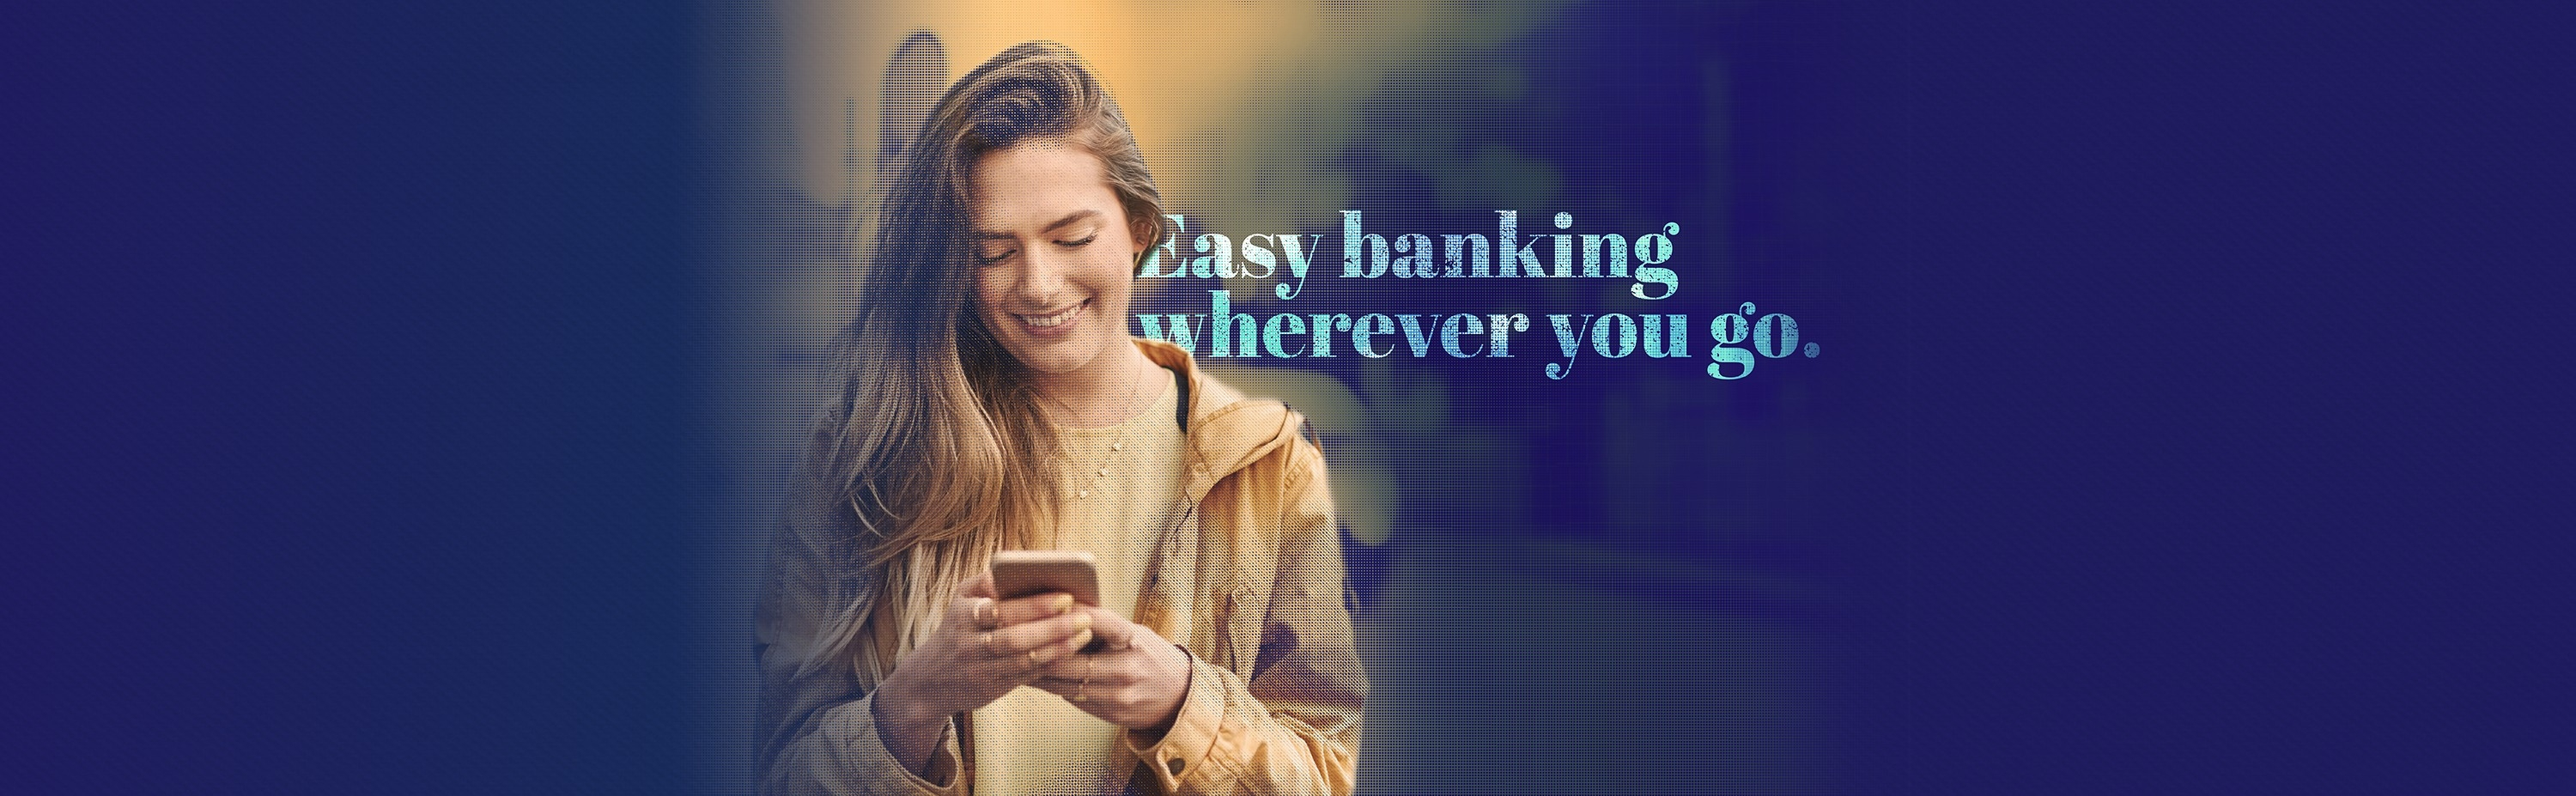 young girl walking and checking her mobile banking app from Fidelity Bank & Trust while smiling. Text on photo says easy mobile banking wherever you go